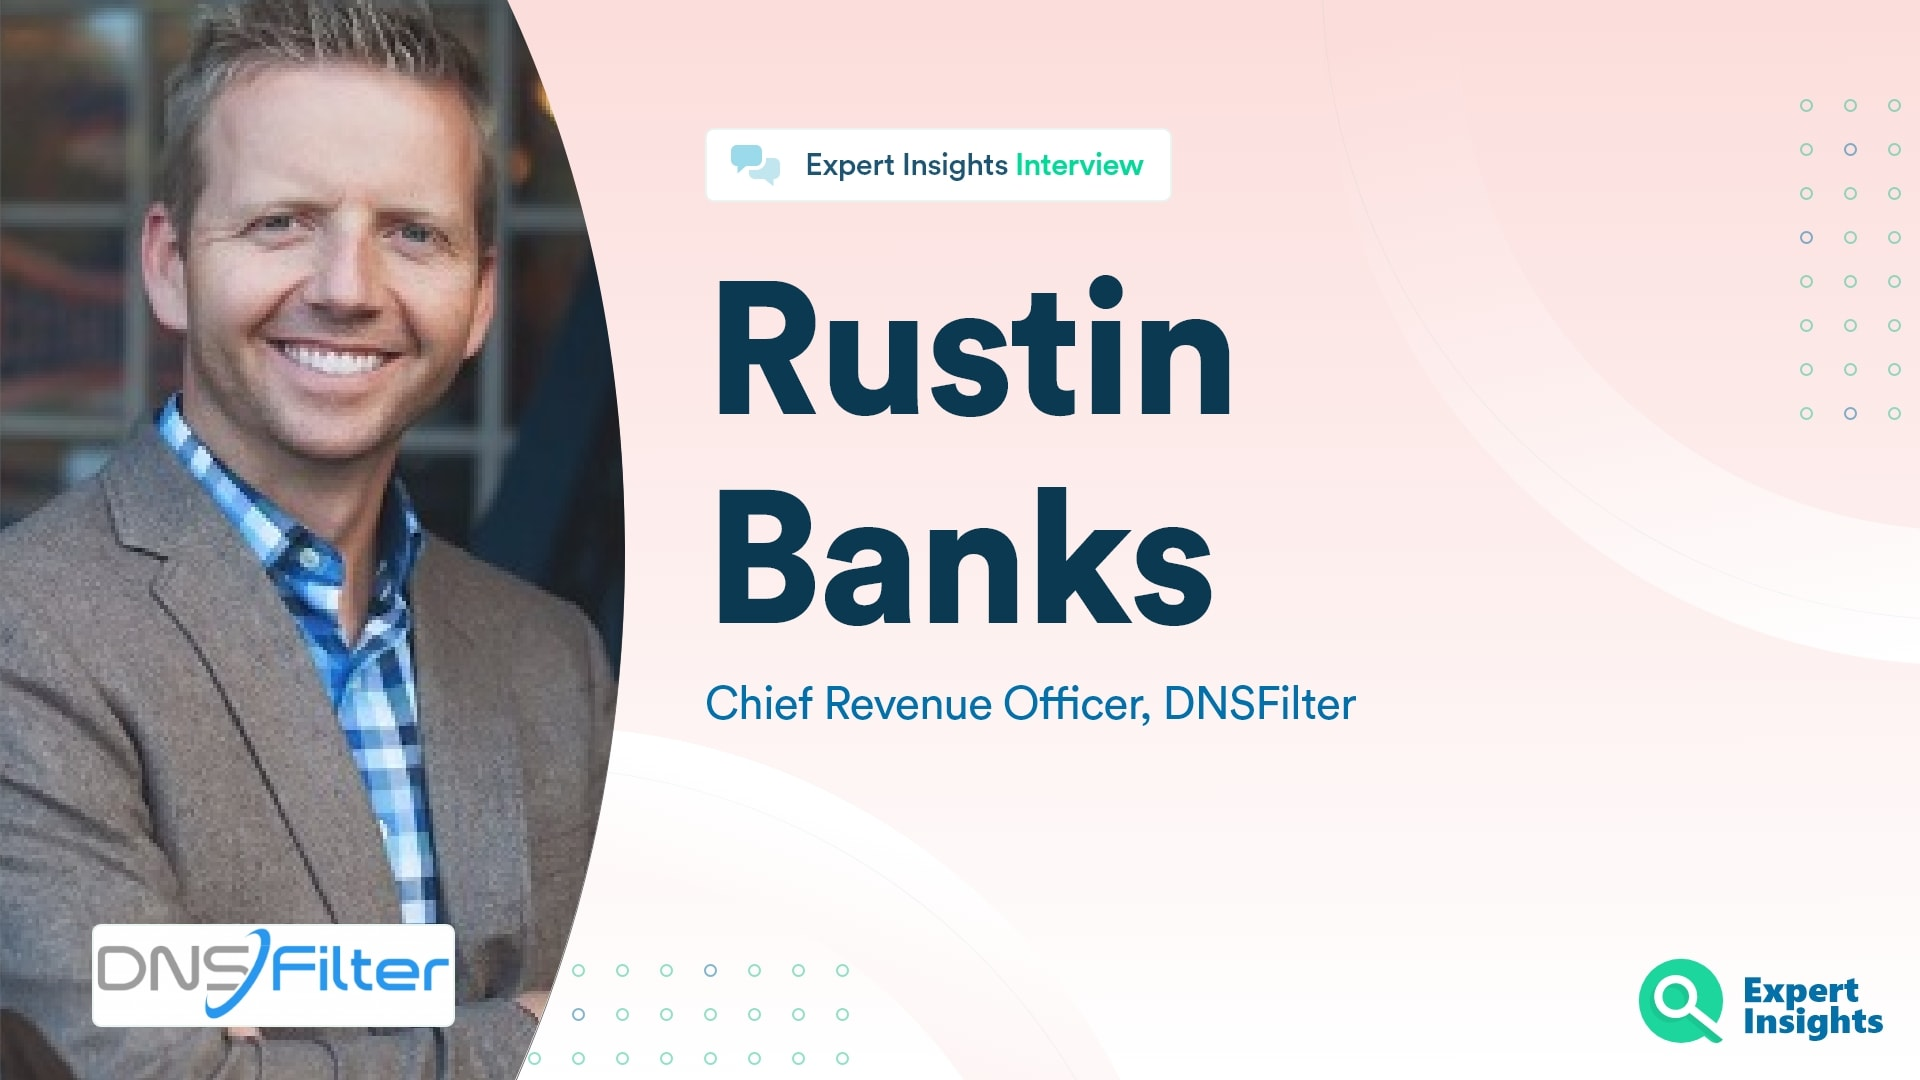 Expert Insights Interview With Rustin Banks Of DNSFilter